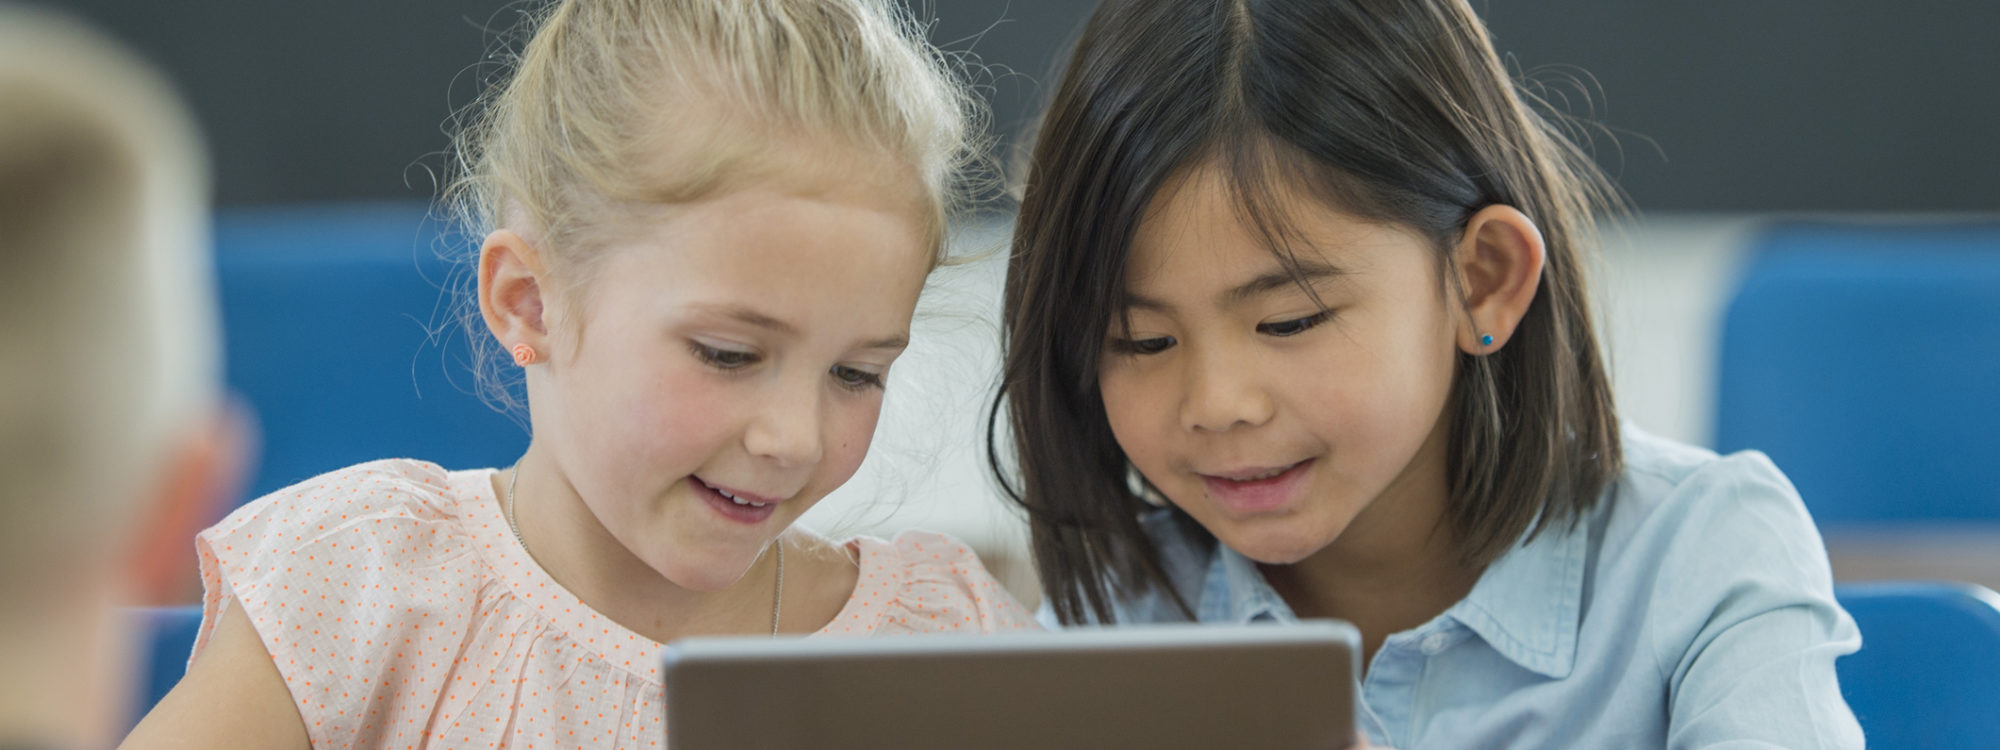 two students sharing tablet device